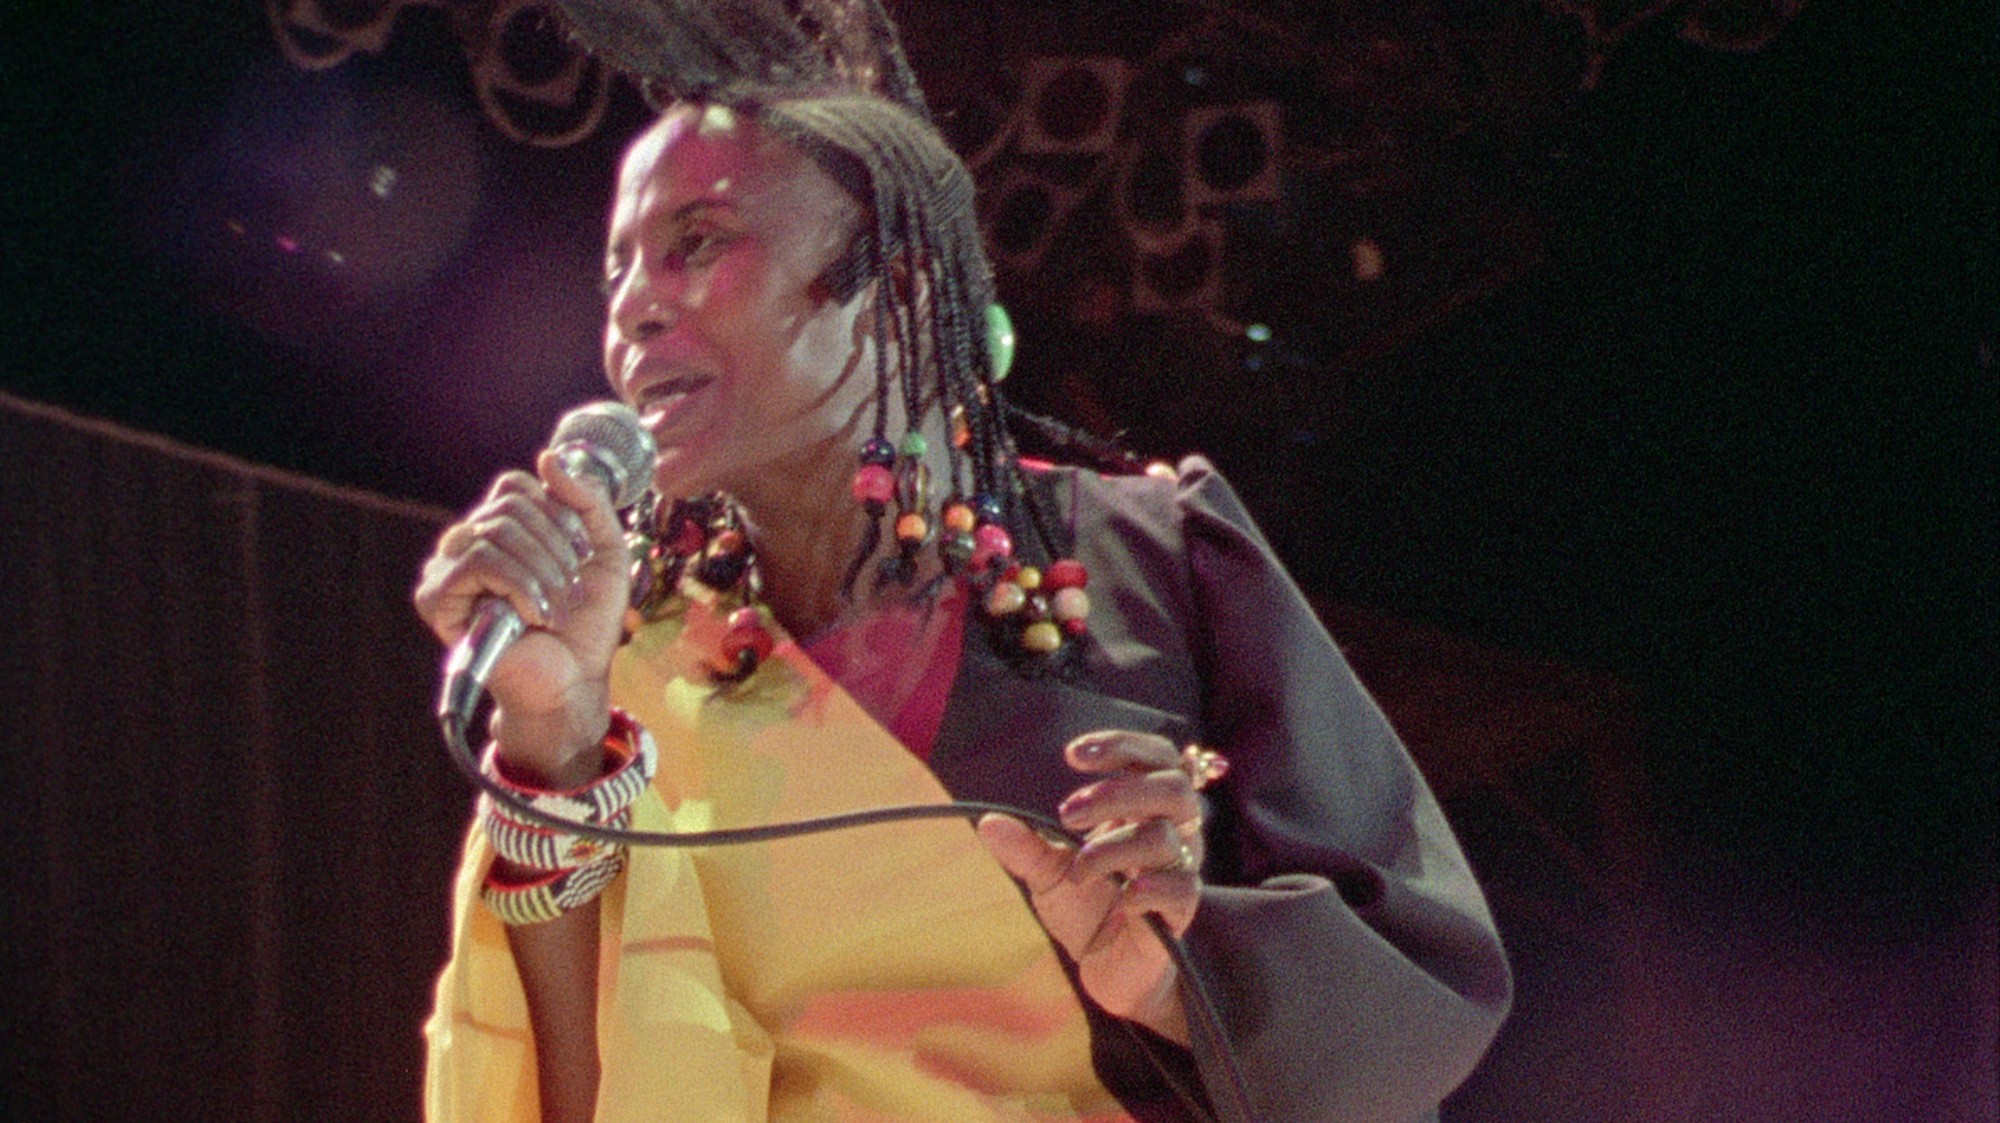 Zaire 74 Was Woodstock for African Artists - VICE